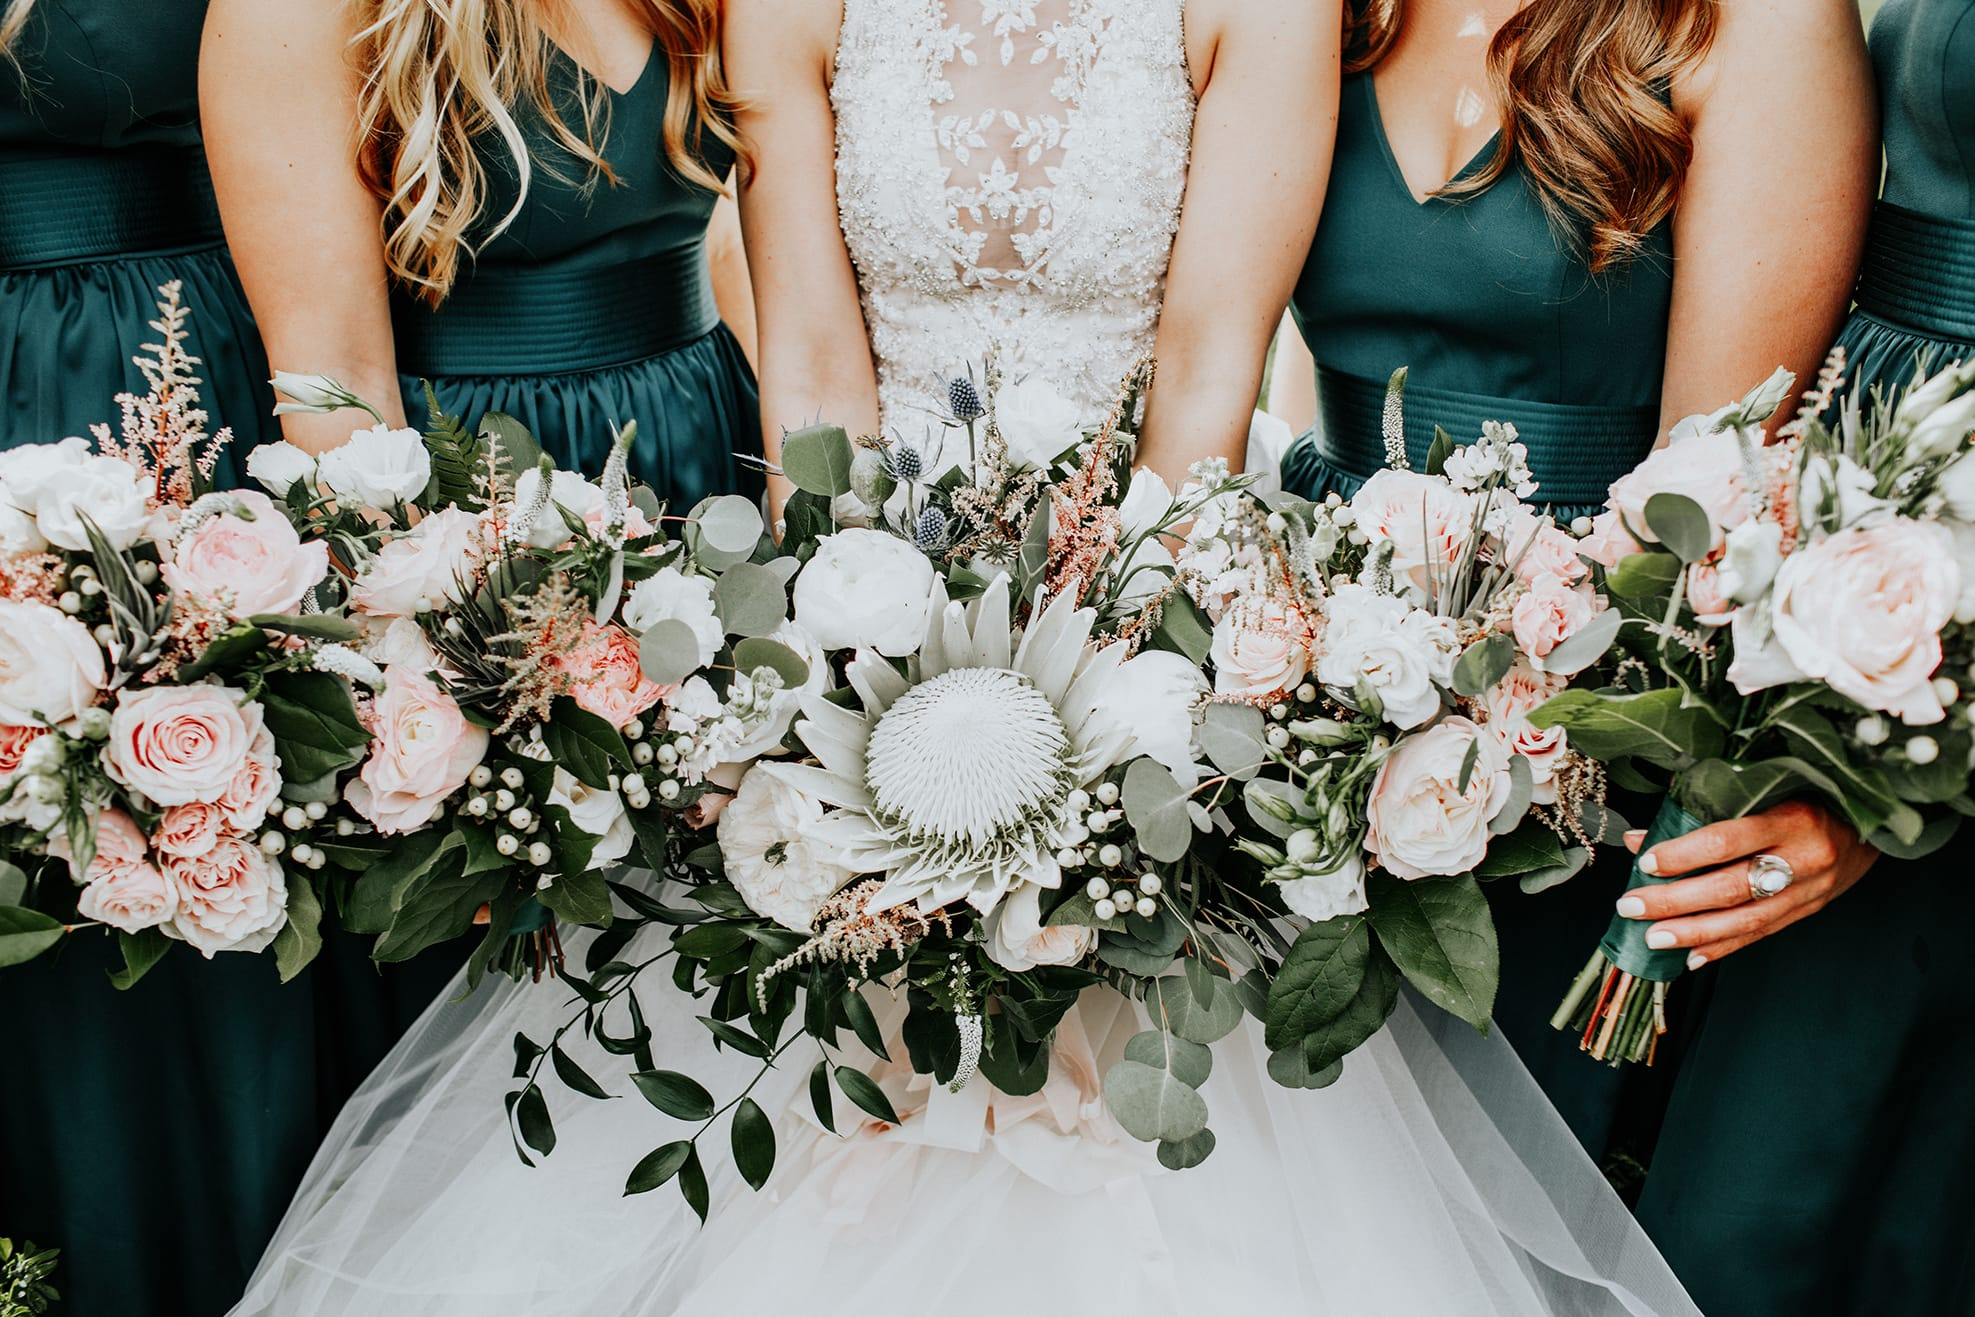 The Maid of Honor's Ultimate Guide to Hosting the Bridal Shower - Lisette by Maggie Sottero with forest green bridesmaids